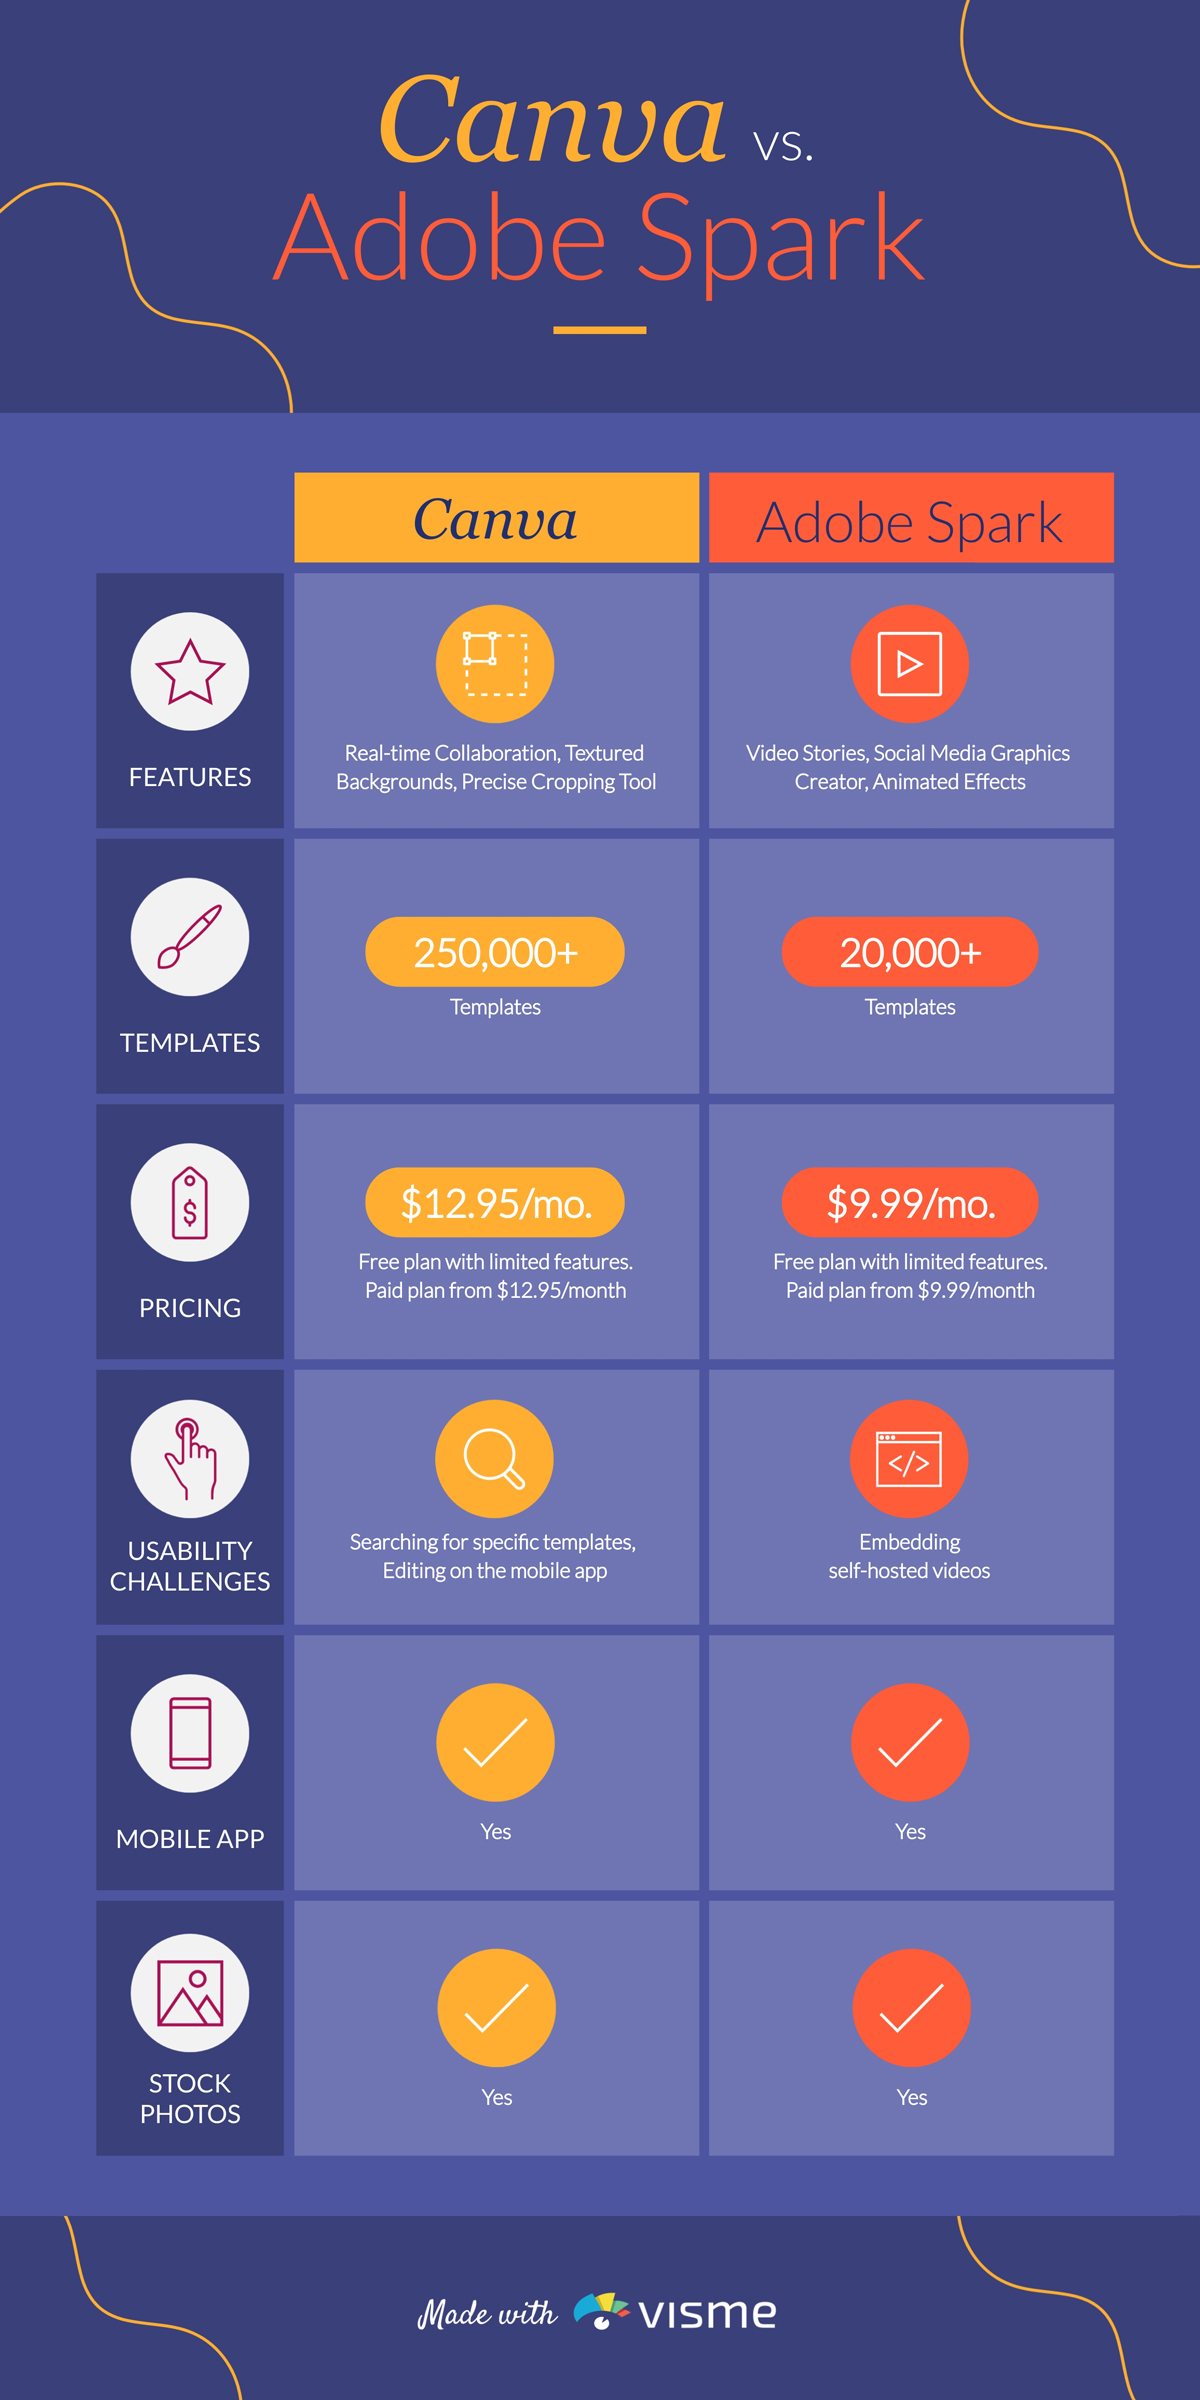 A comparison infographic with a table comparing the features of Canva and Adobe Spark.